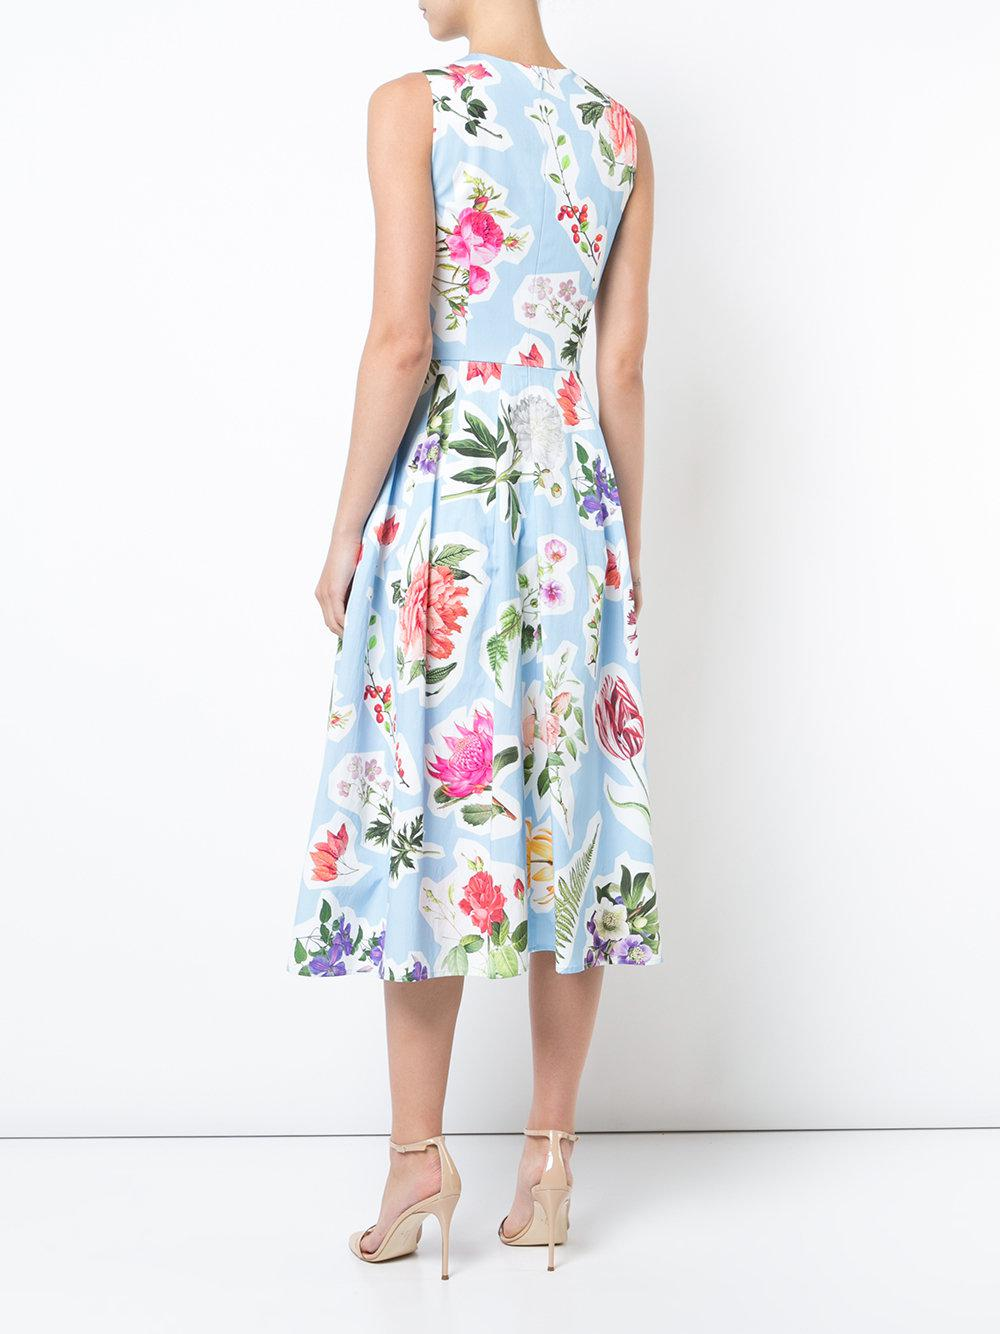 Clearance Pay With Paypal Visit New For Sale flared printed dress - Blue Carolina Herrera Sunshine l3yKoE